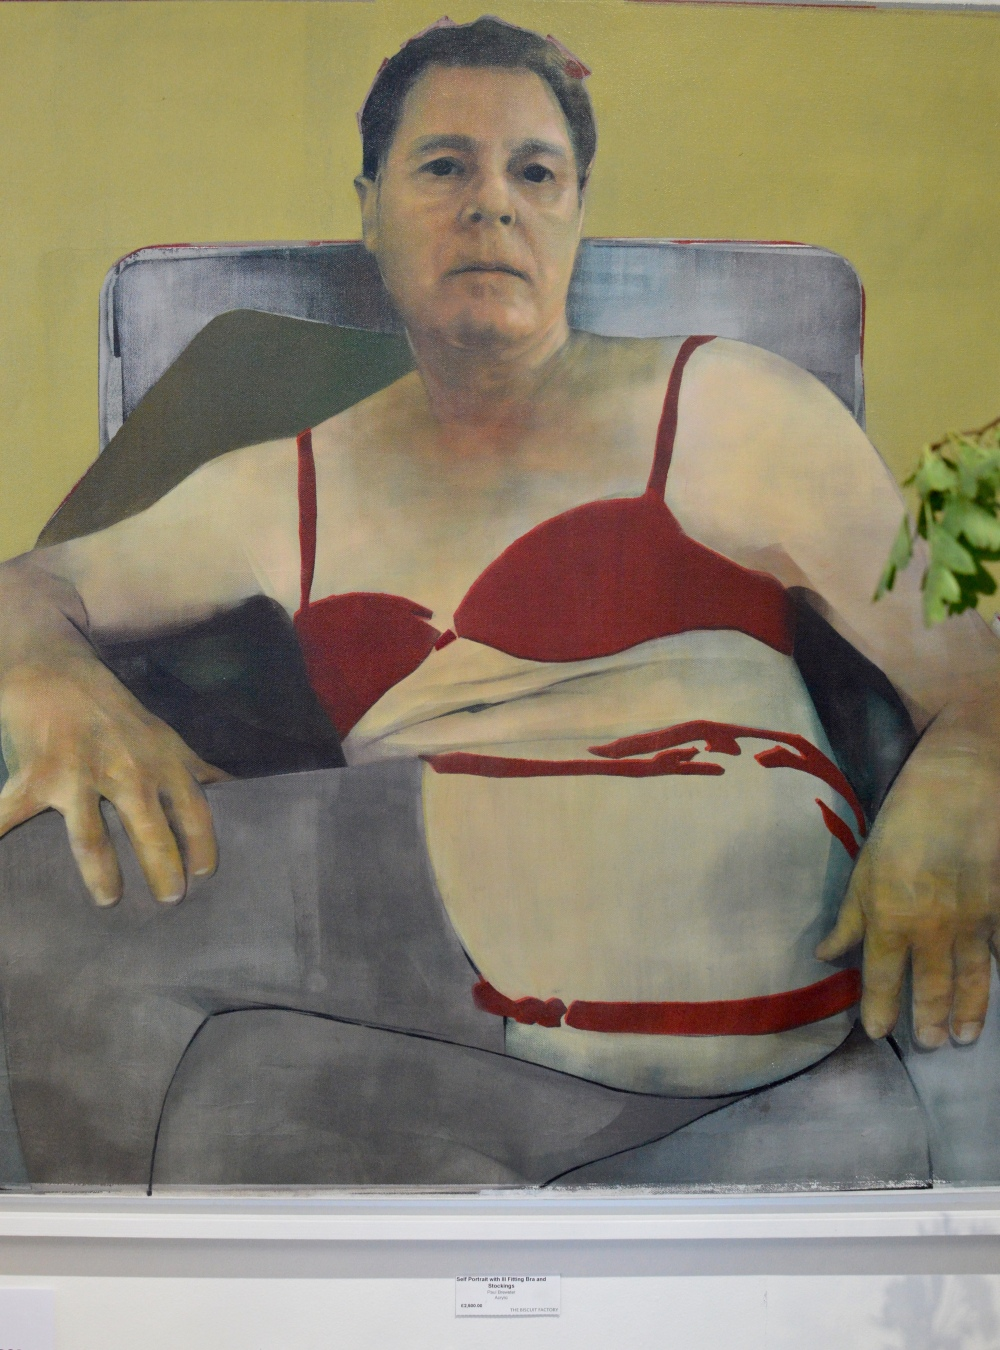 Self Portrait with Ill Fitting Bra and Stockings - Paul Brewster - The Biscuit Factory